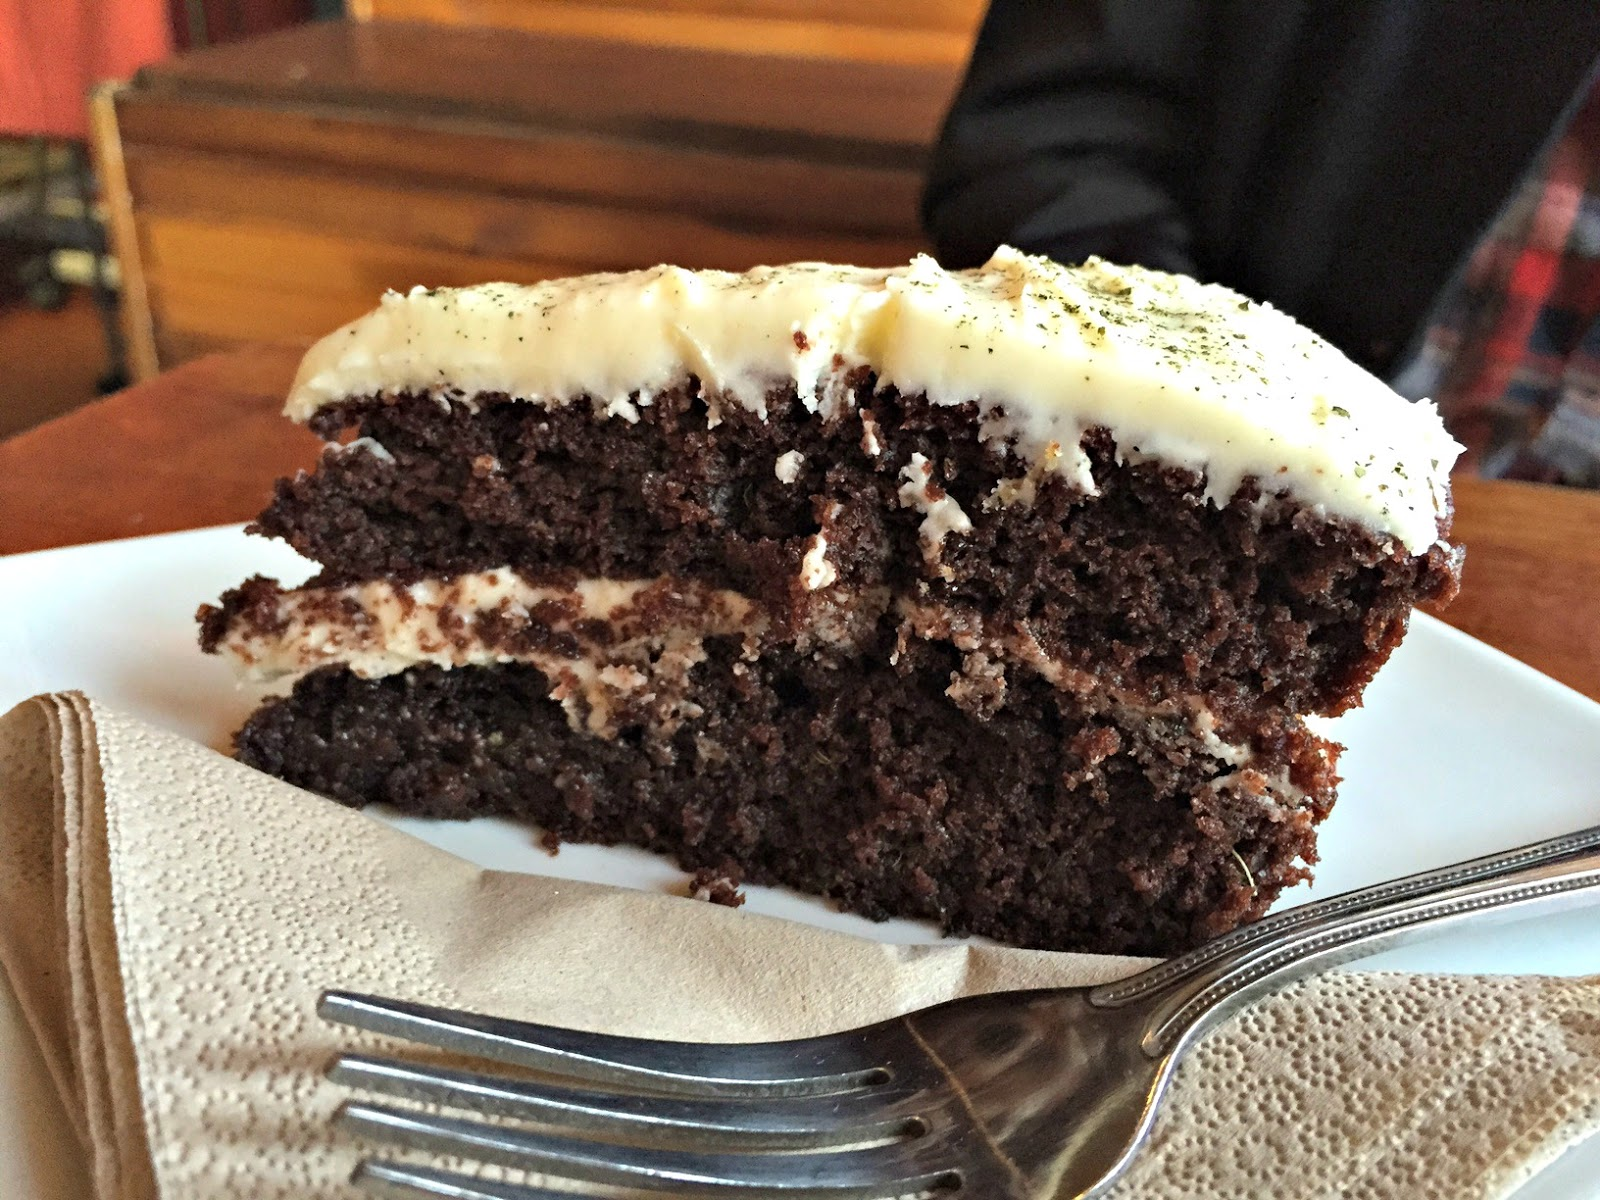 Vegan chocolate mint cake at Tea Sutra